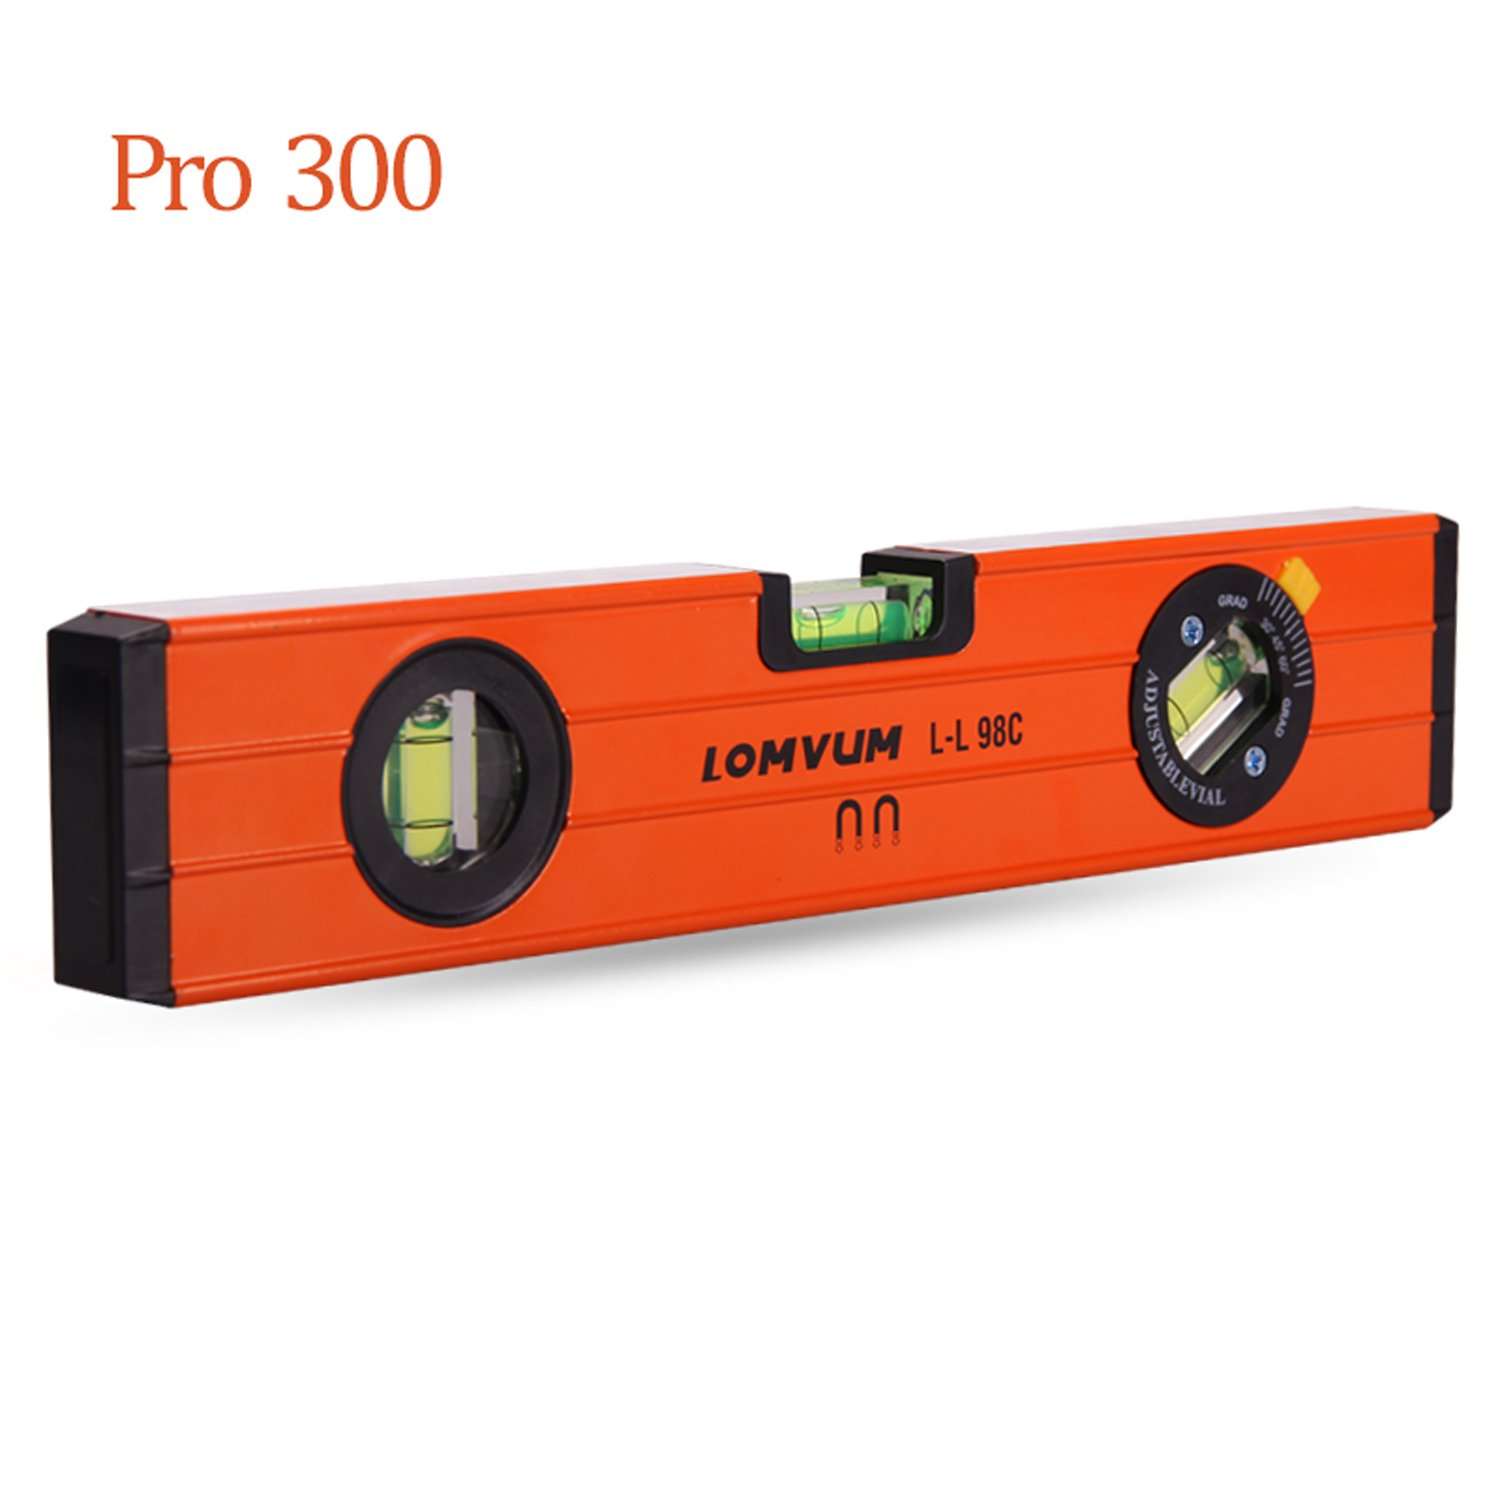 12-Inch Level Aluminum Alloy Magnetic Torpedo Level Plumb/Level/45-Degree Measuring Shock Resistant Spirit Level with Standard and Metric Rulers by Lomvum